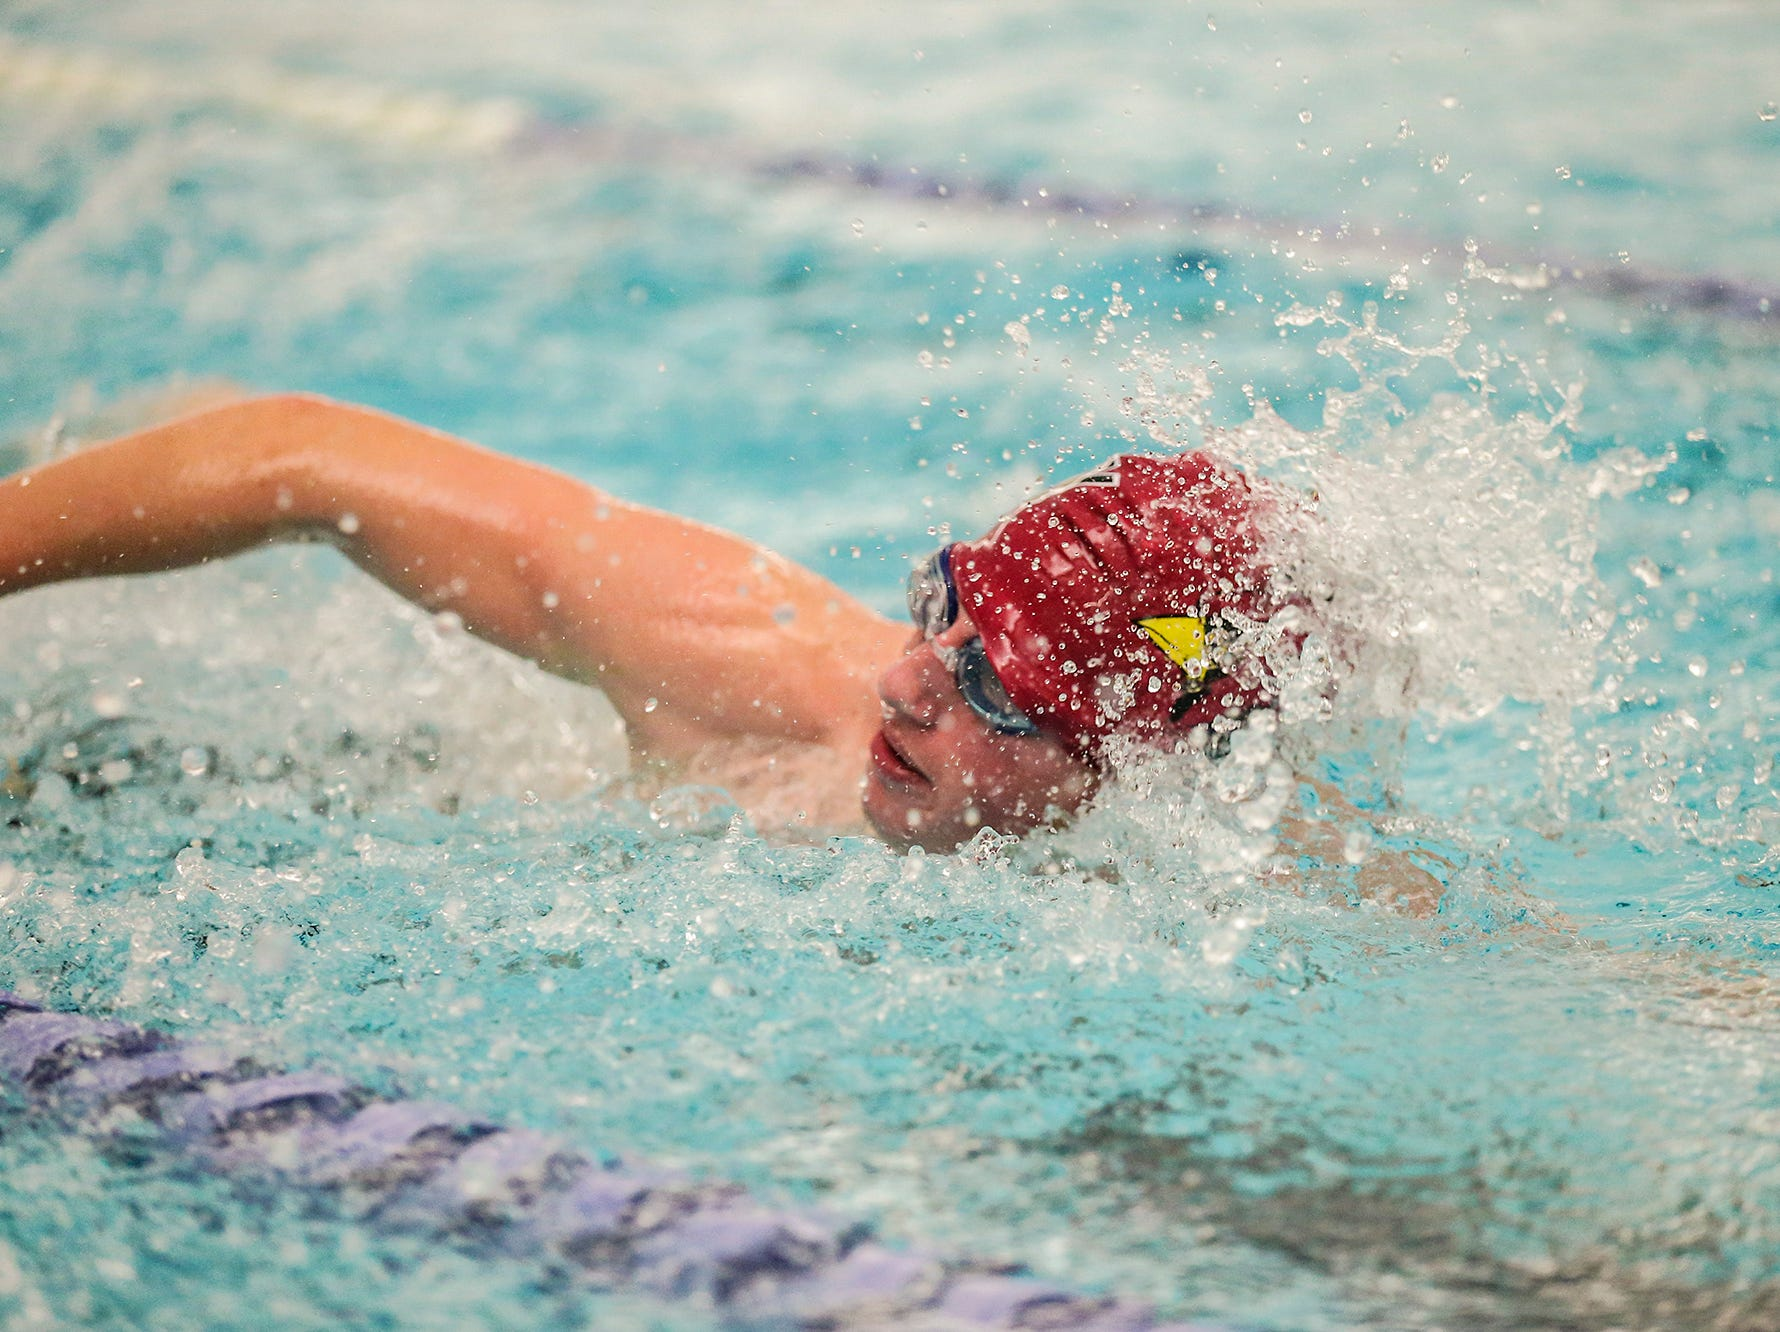 Fond du Lac High School's Charlie Quast competes in the 50 yard freestyle against Neenah High School during their swim meet Tuesday, December 11, 2018 in Fond du Lac, Wisconsin. Doug Raflik/USA TODAY NETWORK-Wisconsin